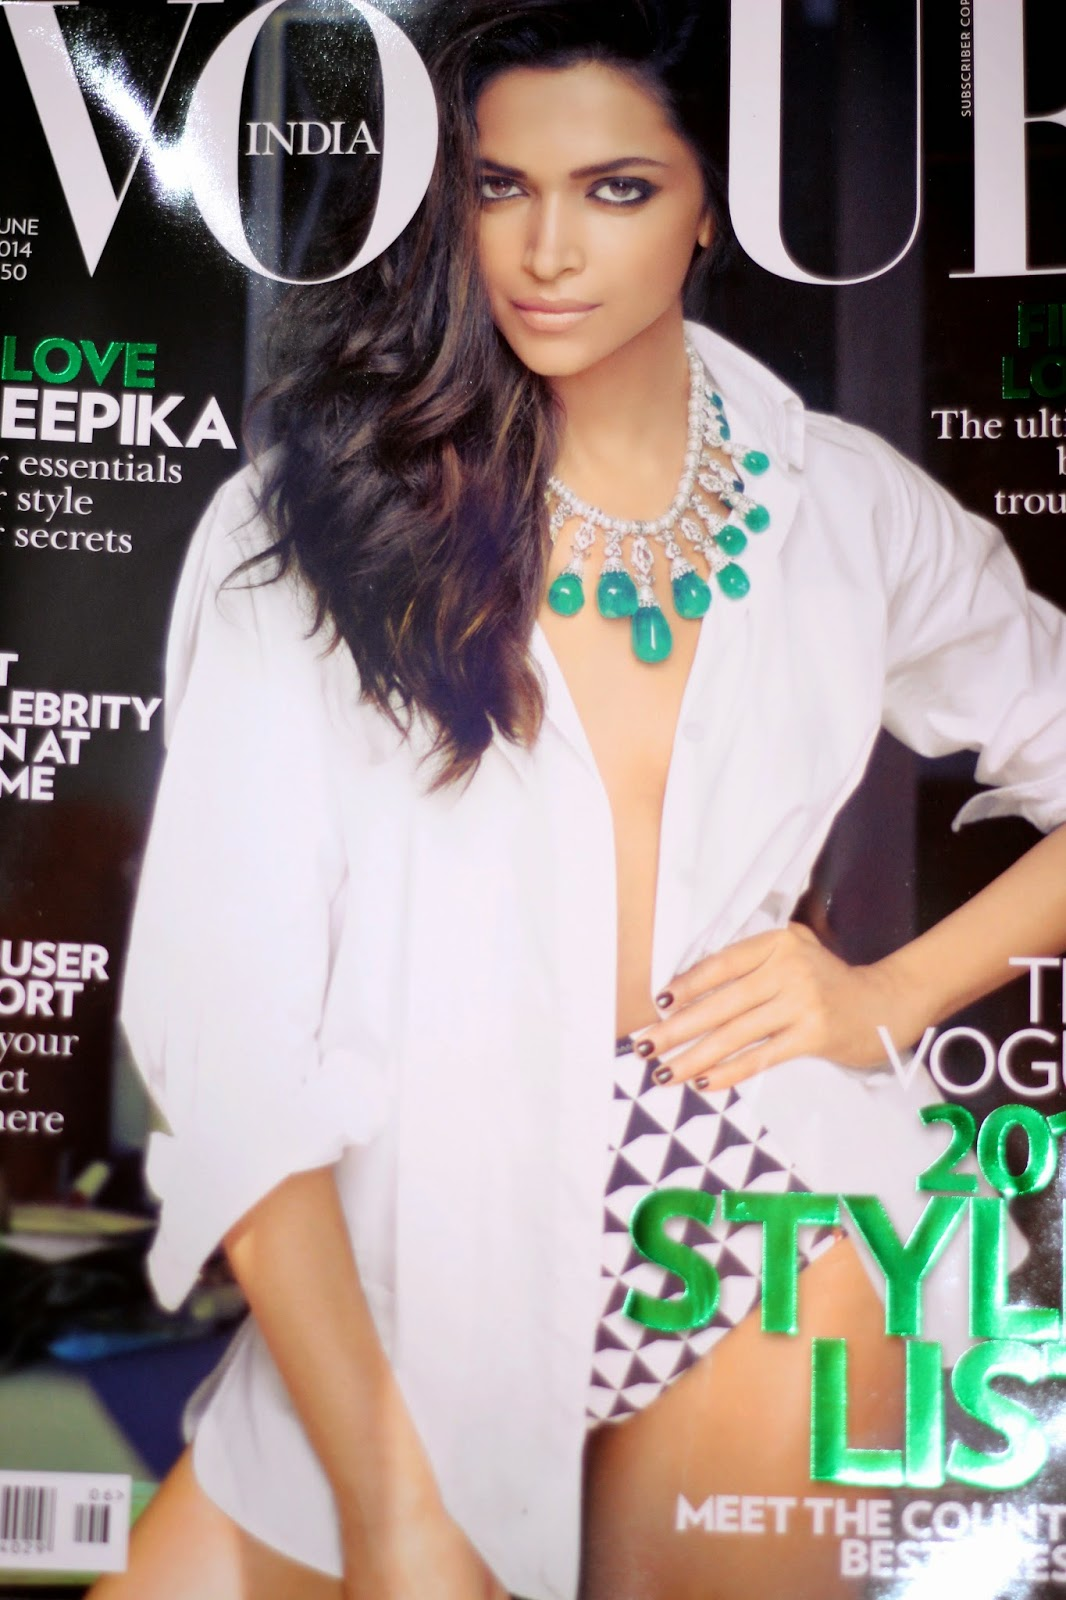 Deepika Padukone, Instagram, VOGUE India And June 2014 Cover Page